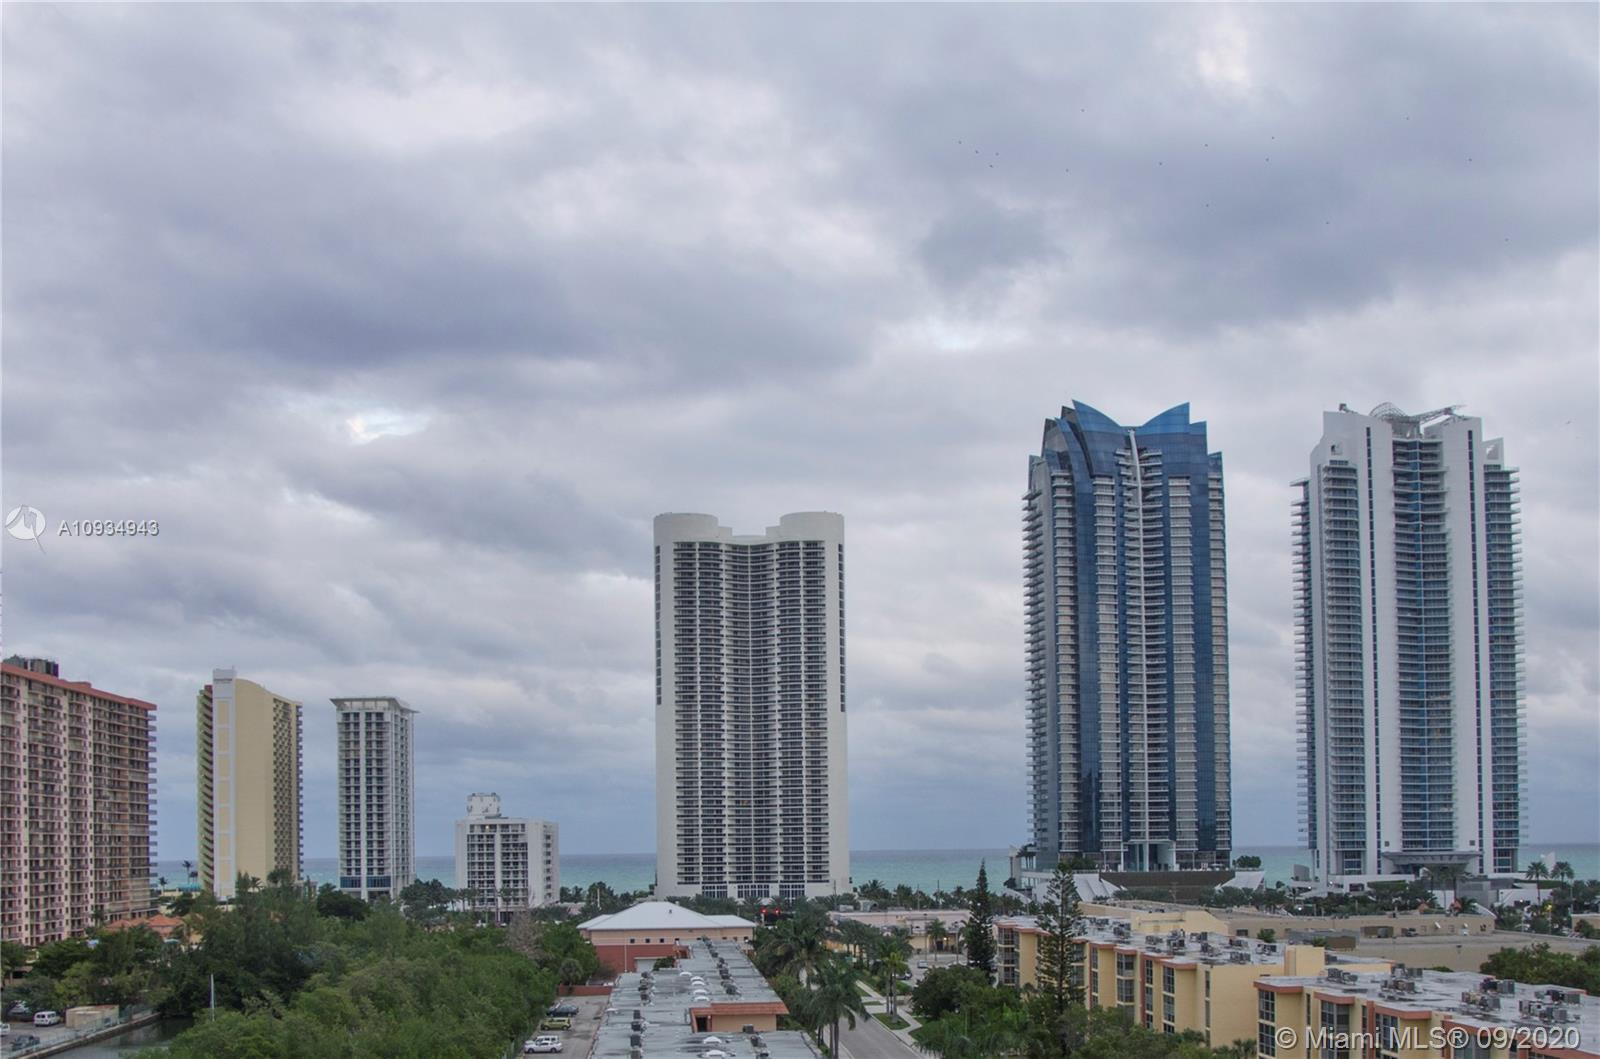 PENTHOUSE UNIT AND THE BEST BLDG LINE TO LIVE IN. BEAUTIFUL OCEAN VIEW FROM THE SECOND YOU WALK THRO